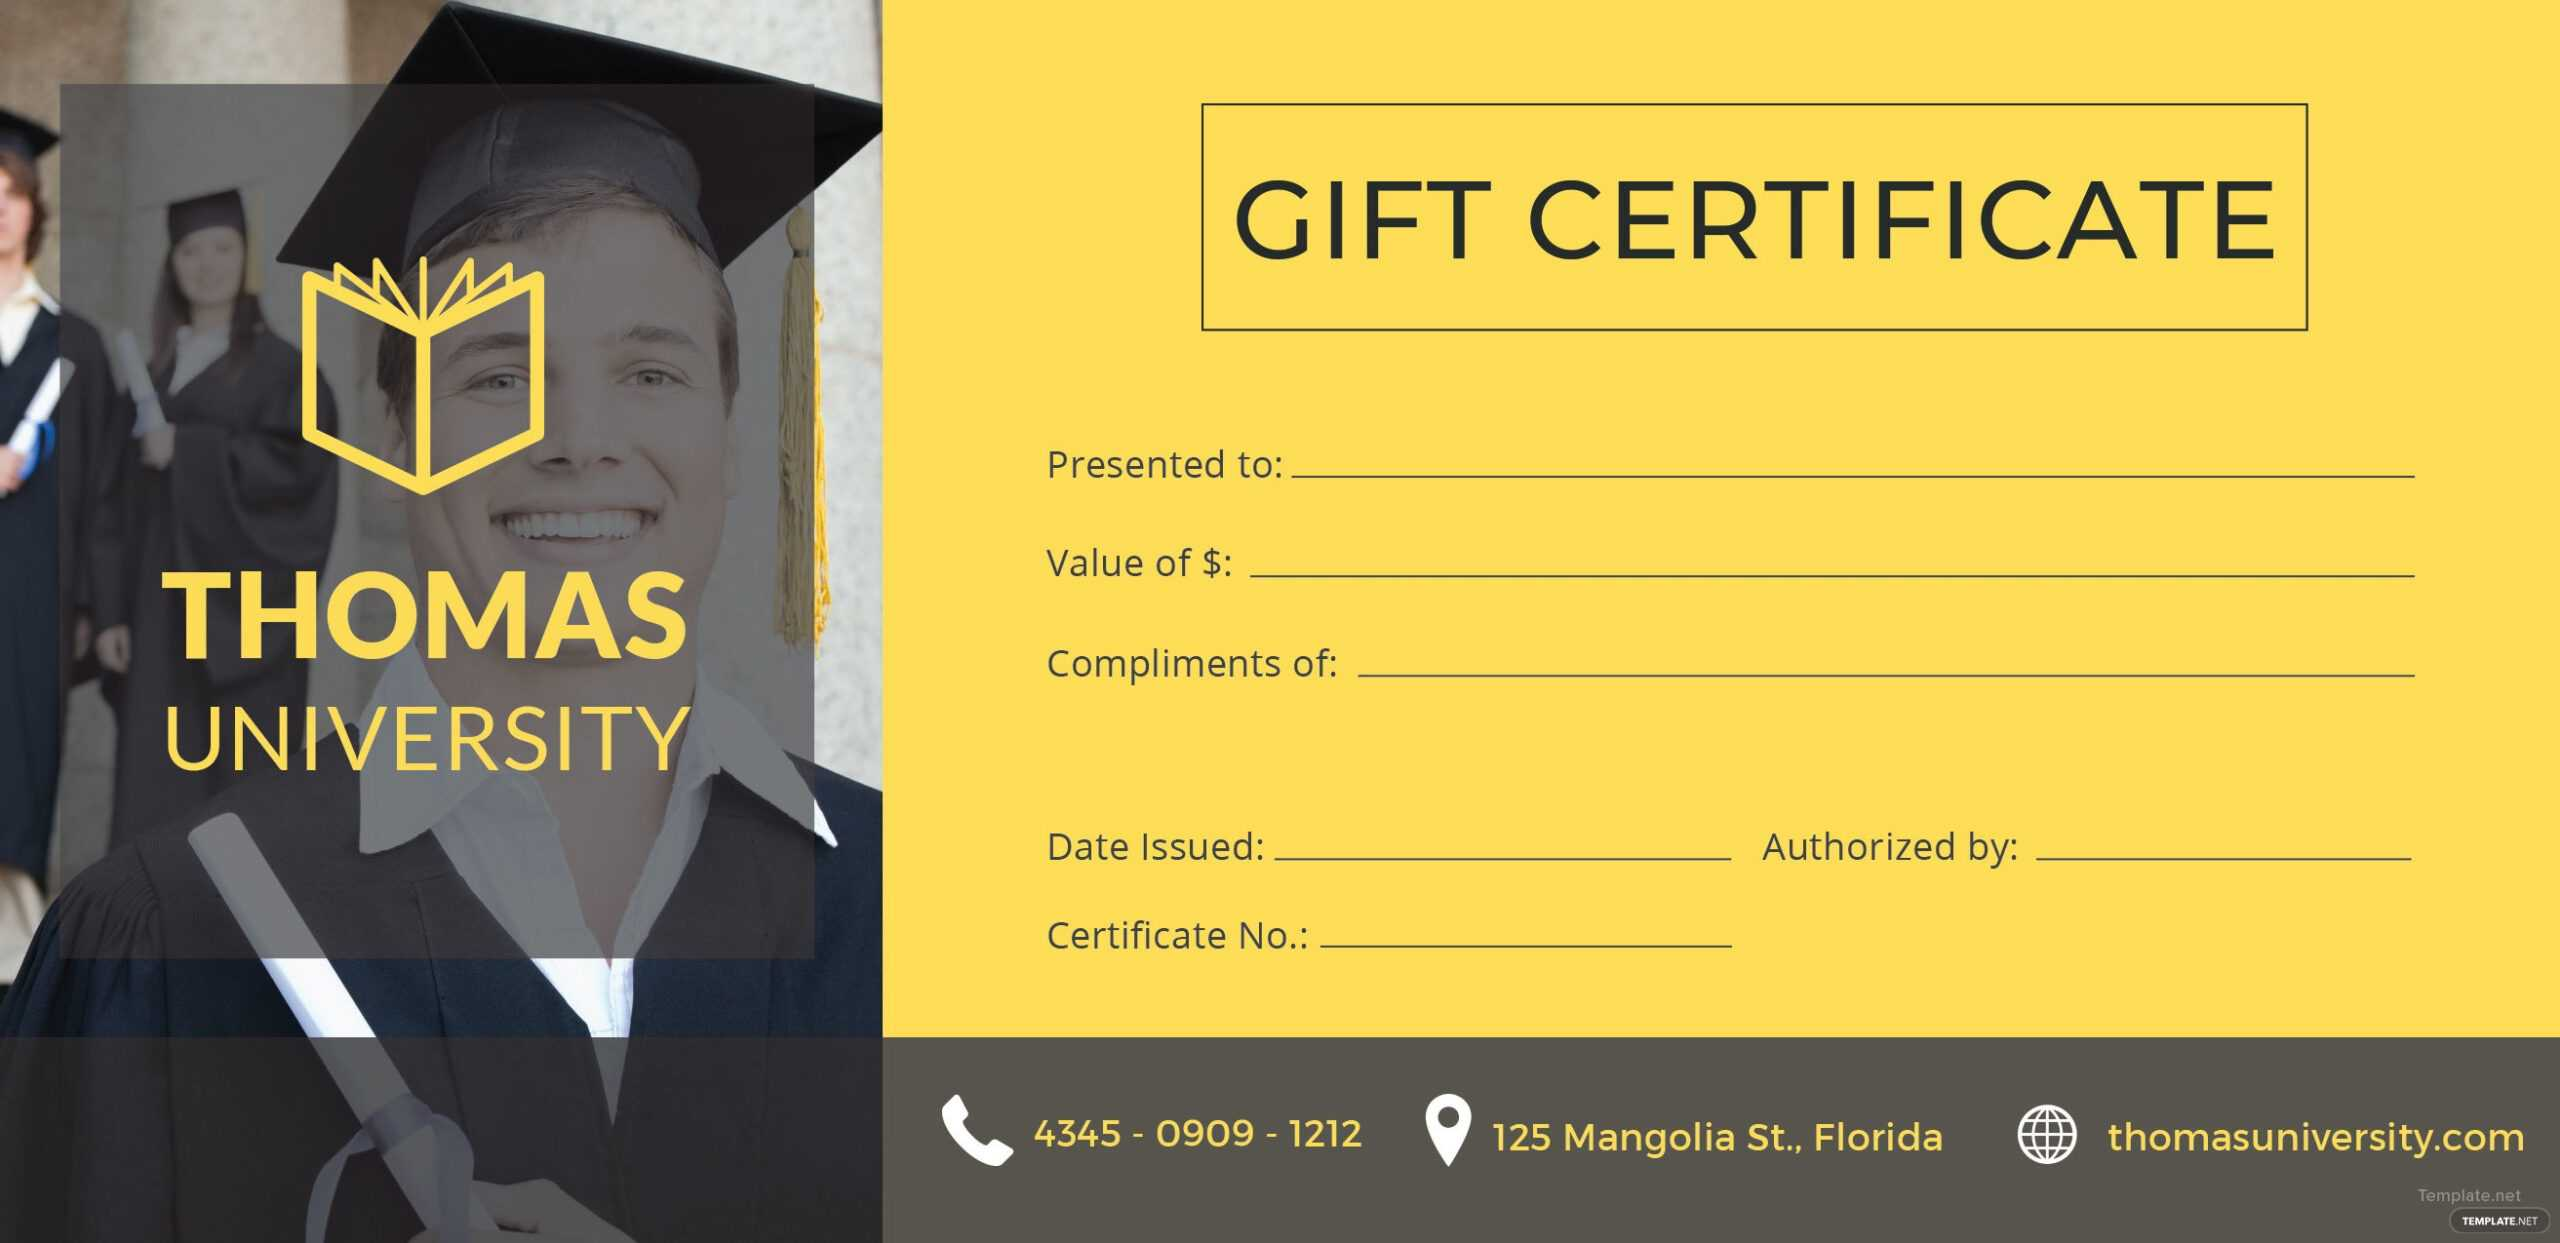 Holiday Gift Certificate Template In Graduation Gift Certificate Template Free